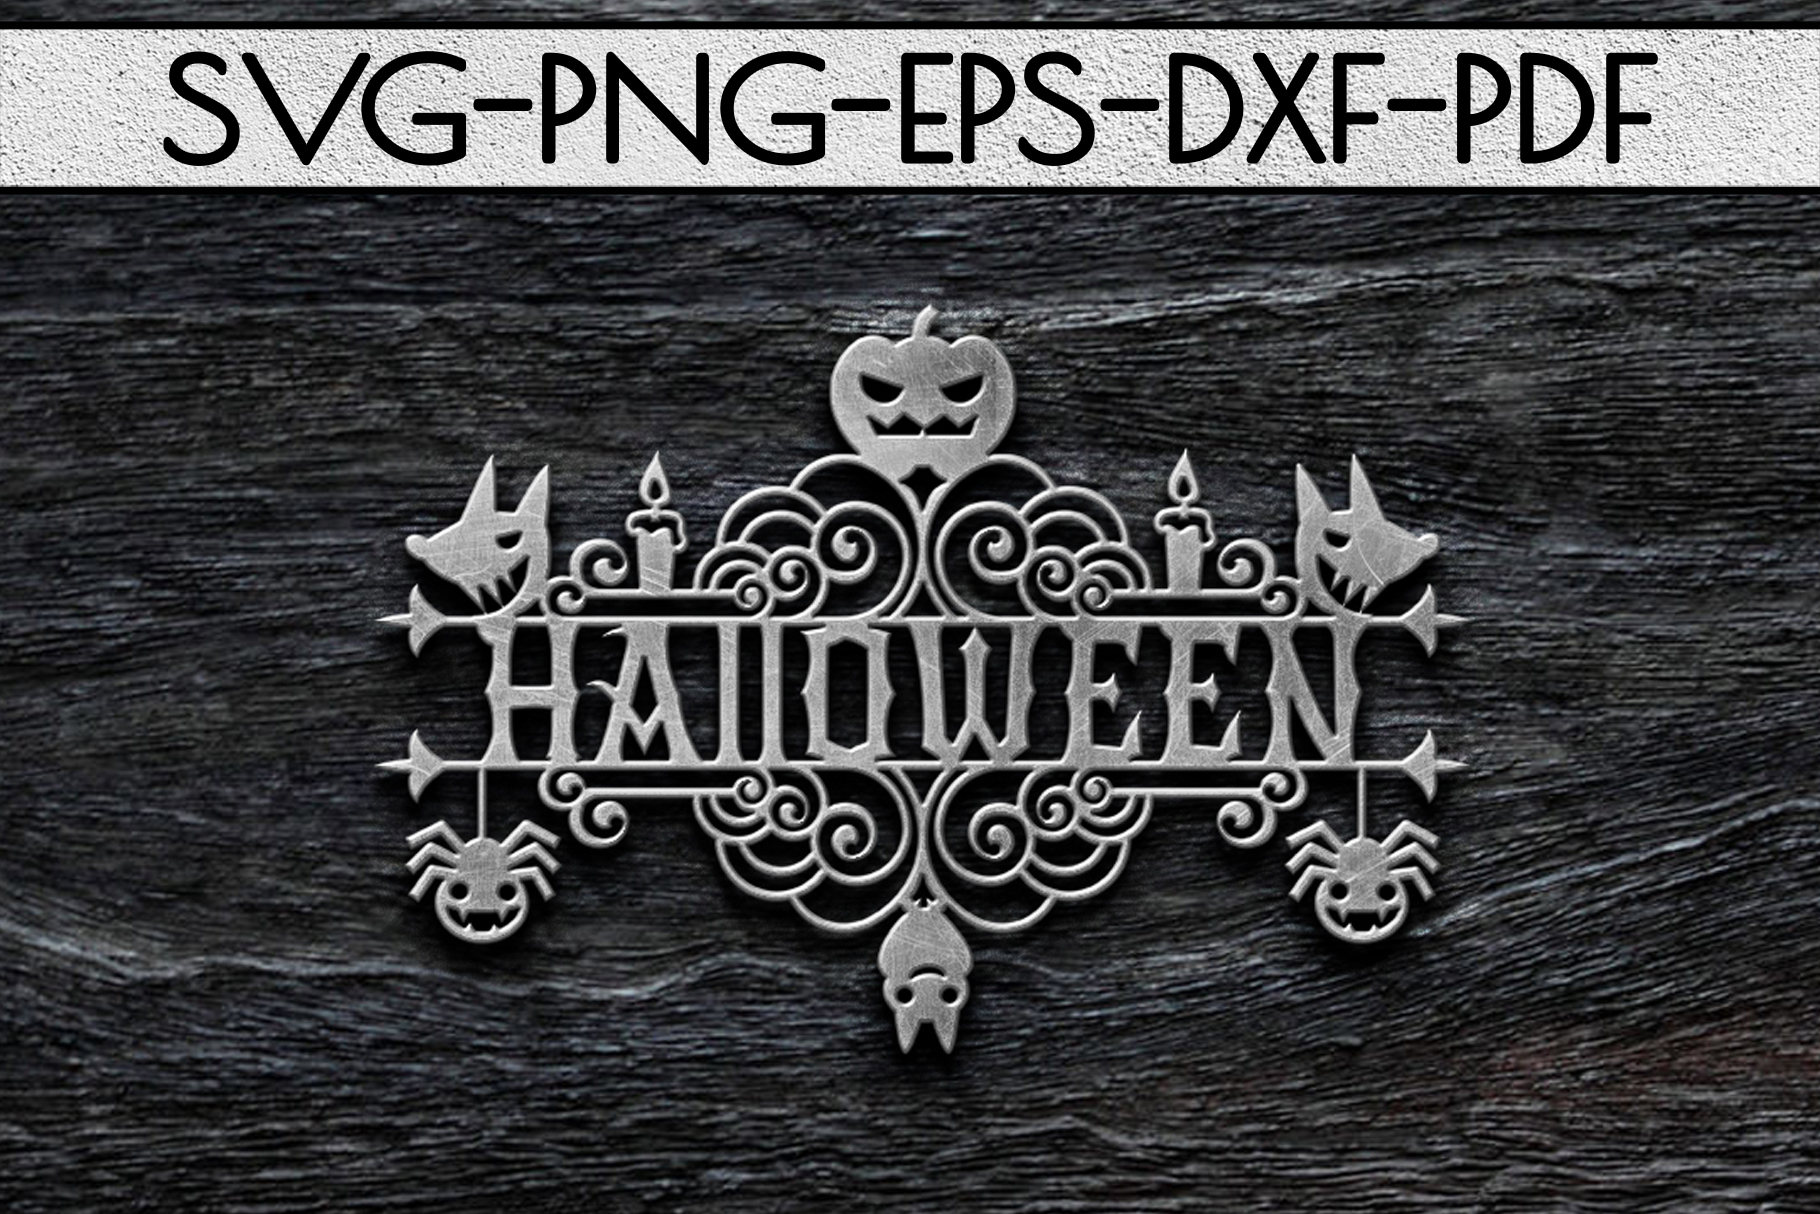 Halloween Sign Design Papercut Template, Spooky SVG, PDF example image 3